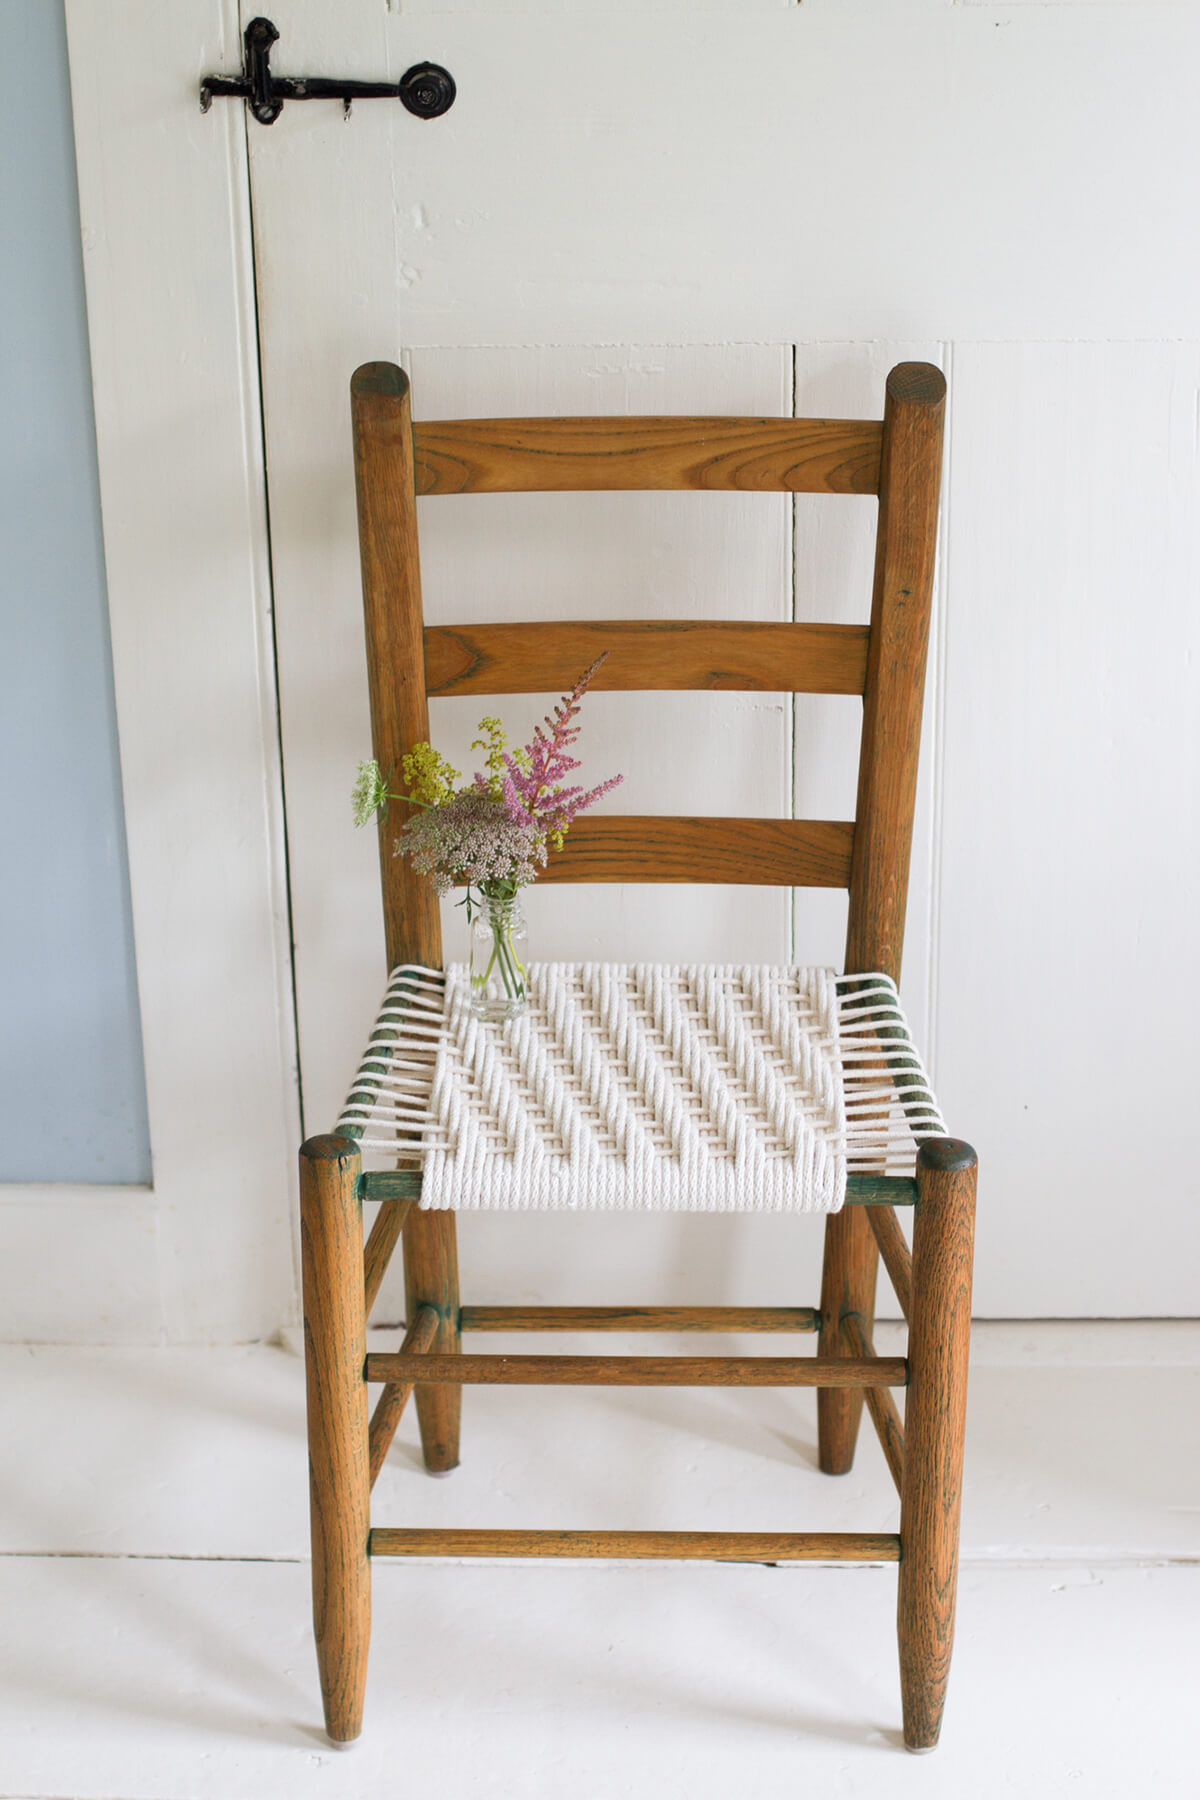 Patterned Cotton Weaved Renovated Chair